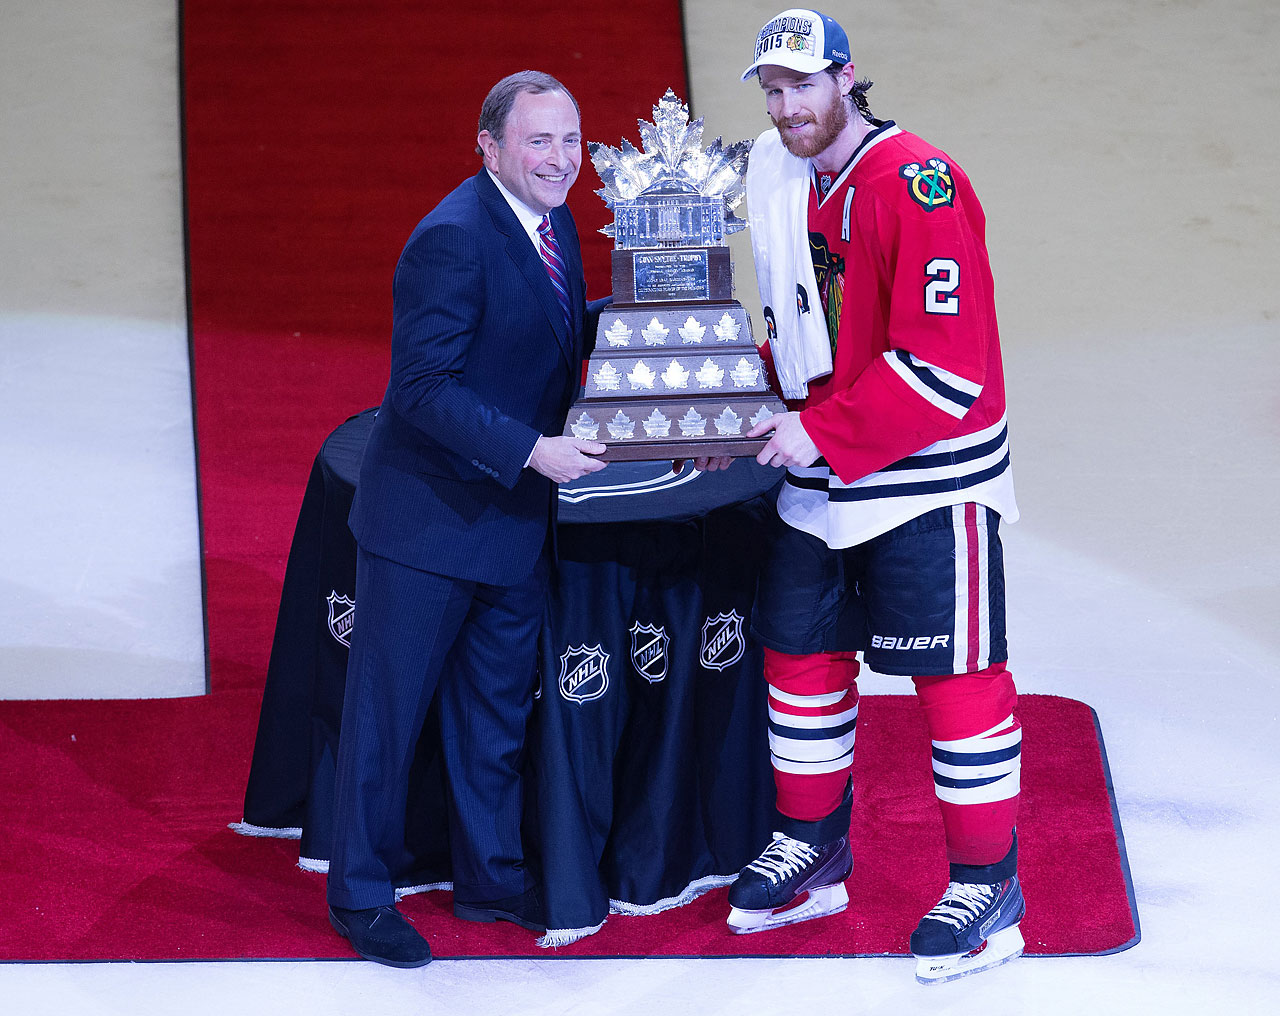 Commissioner Gary Bettman presents the Conn Smythe Trophy to Duncan Keith, who was a unanimous selection for playoff MVP after he finished with 21 points while playing over 700 minutes in the postseason.